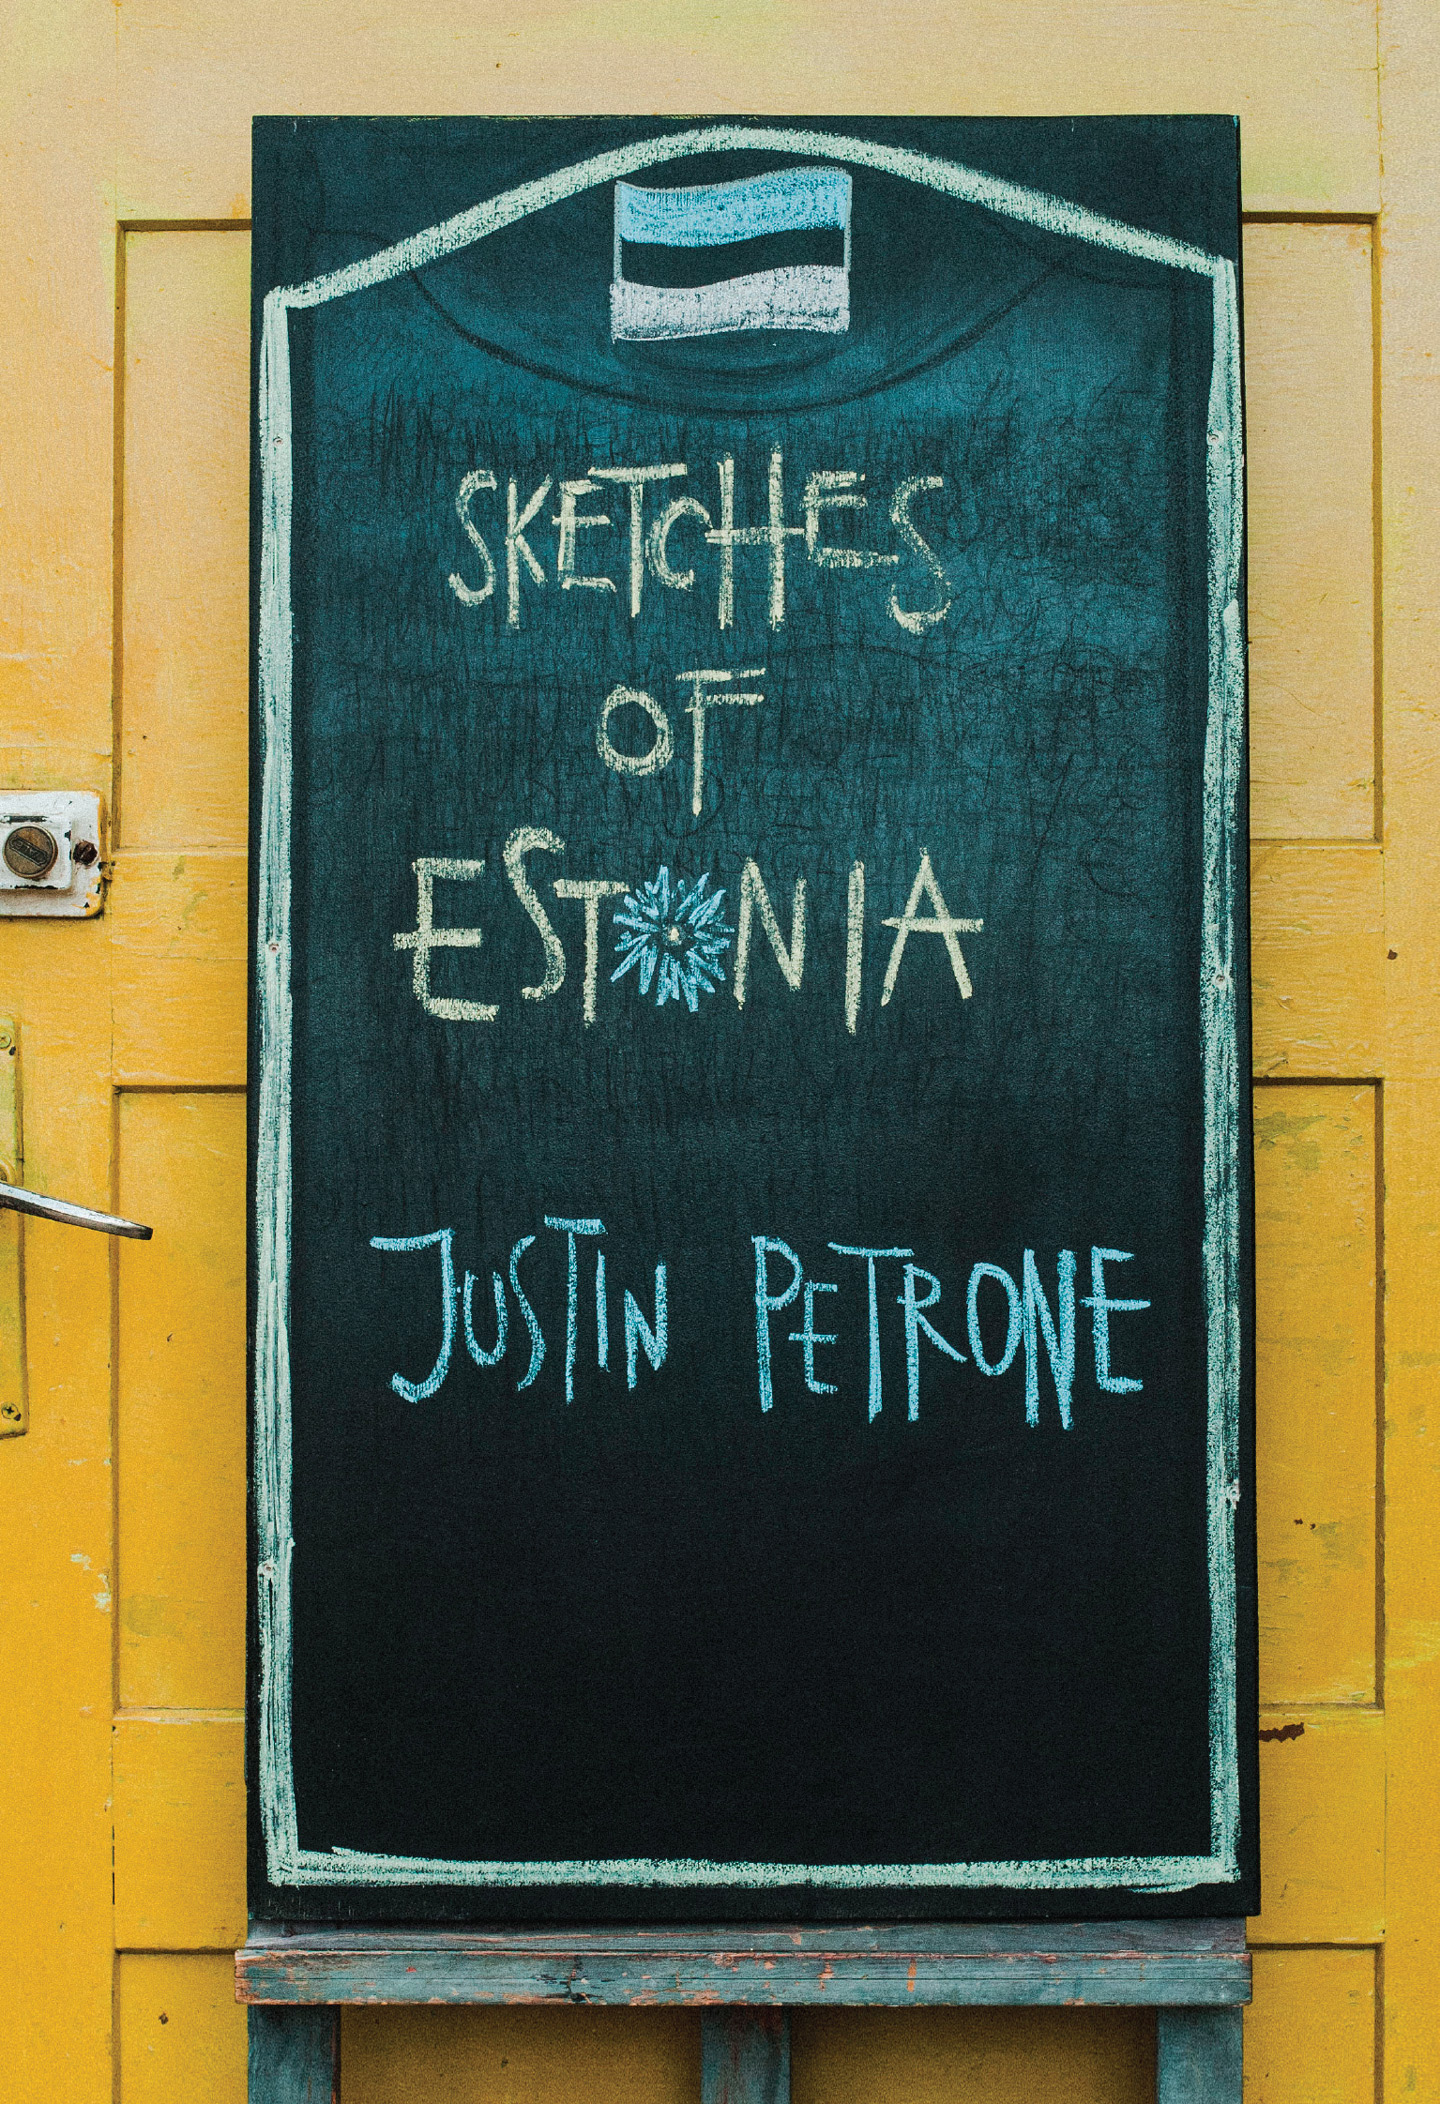 Justin Petrone Sketches of Estonia portable pen orp meter redox potential tester negative potential pen tester orp meter